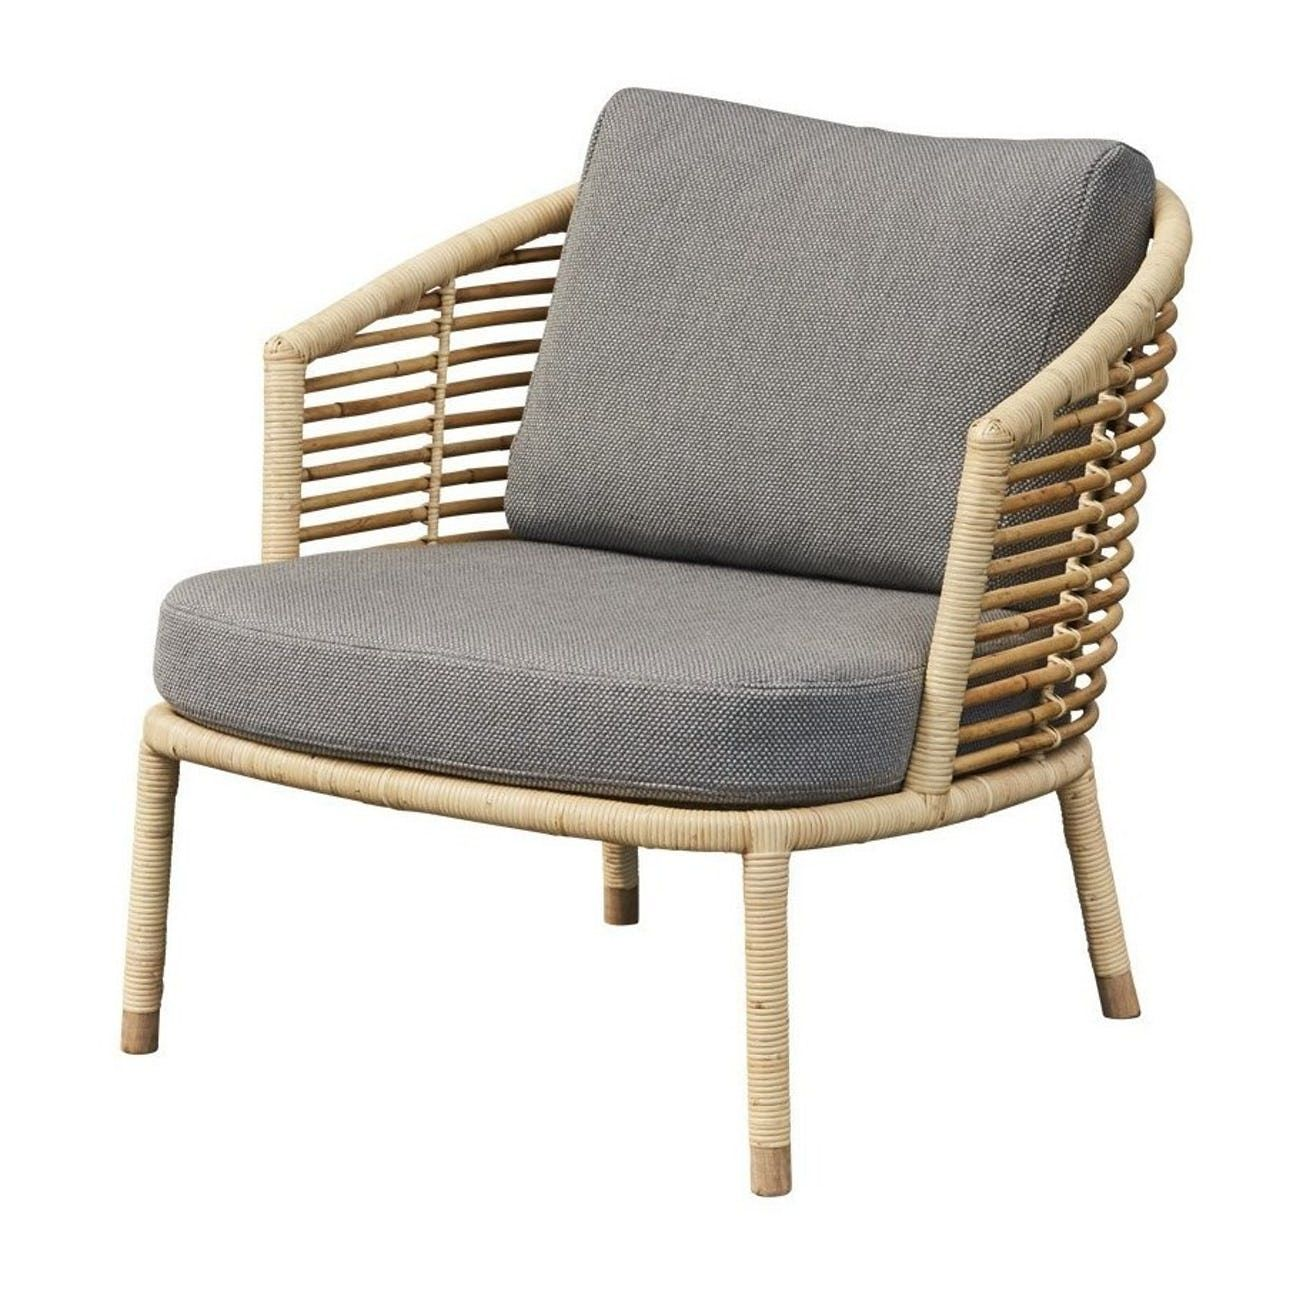 Sense Armchair By Cane Line Now Available At Haute Living Chair